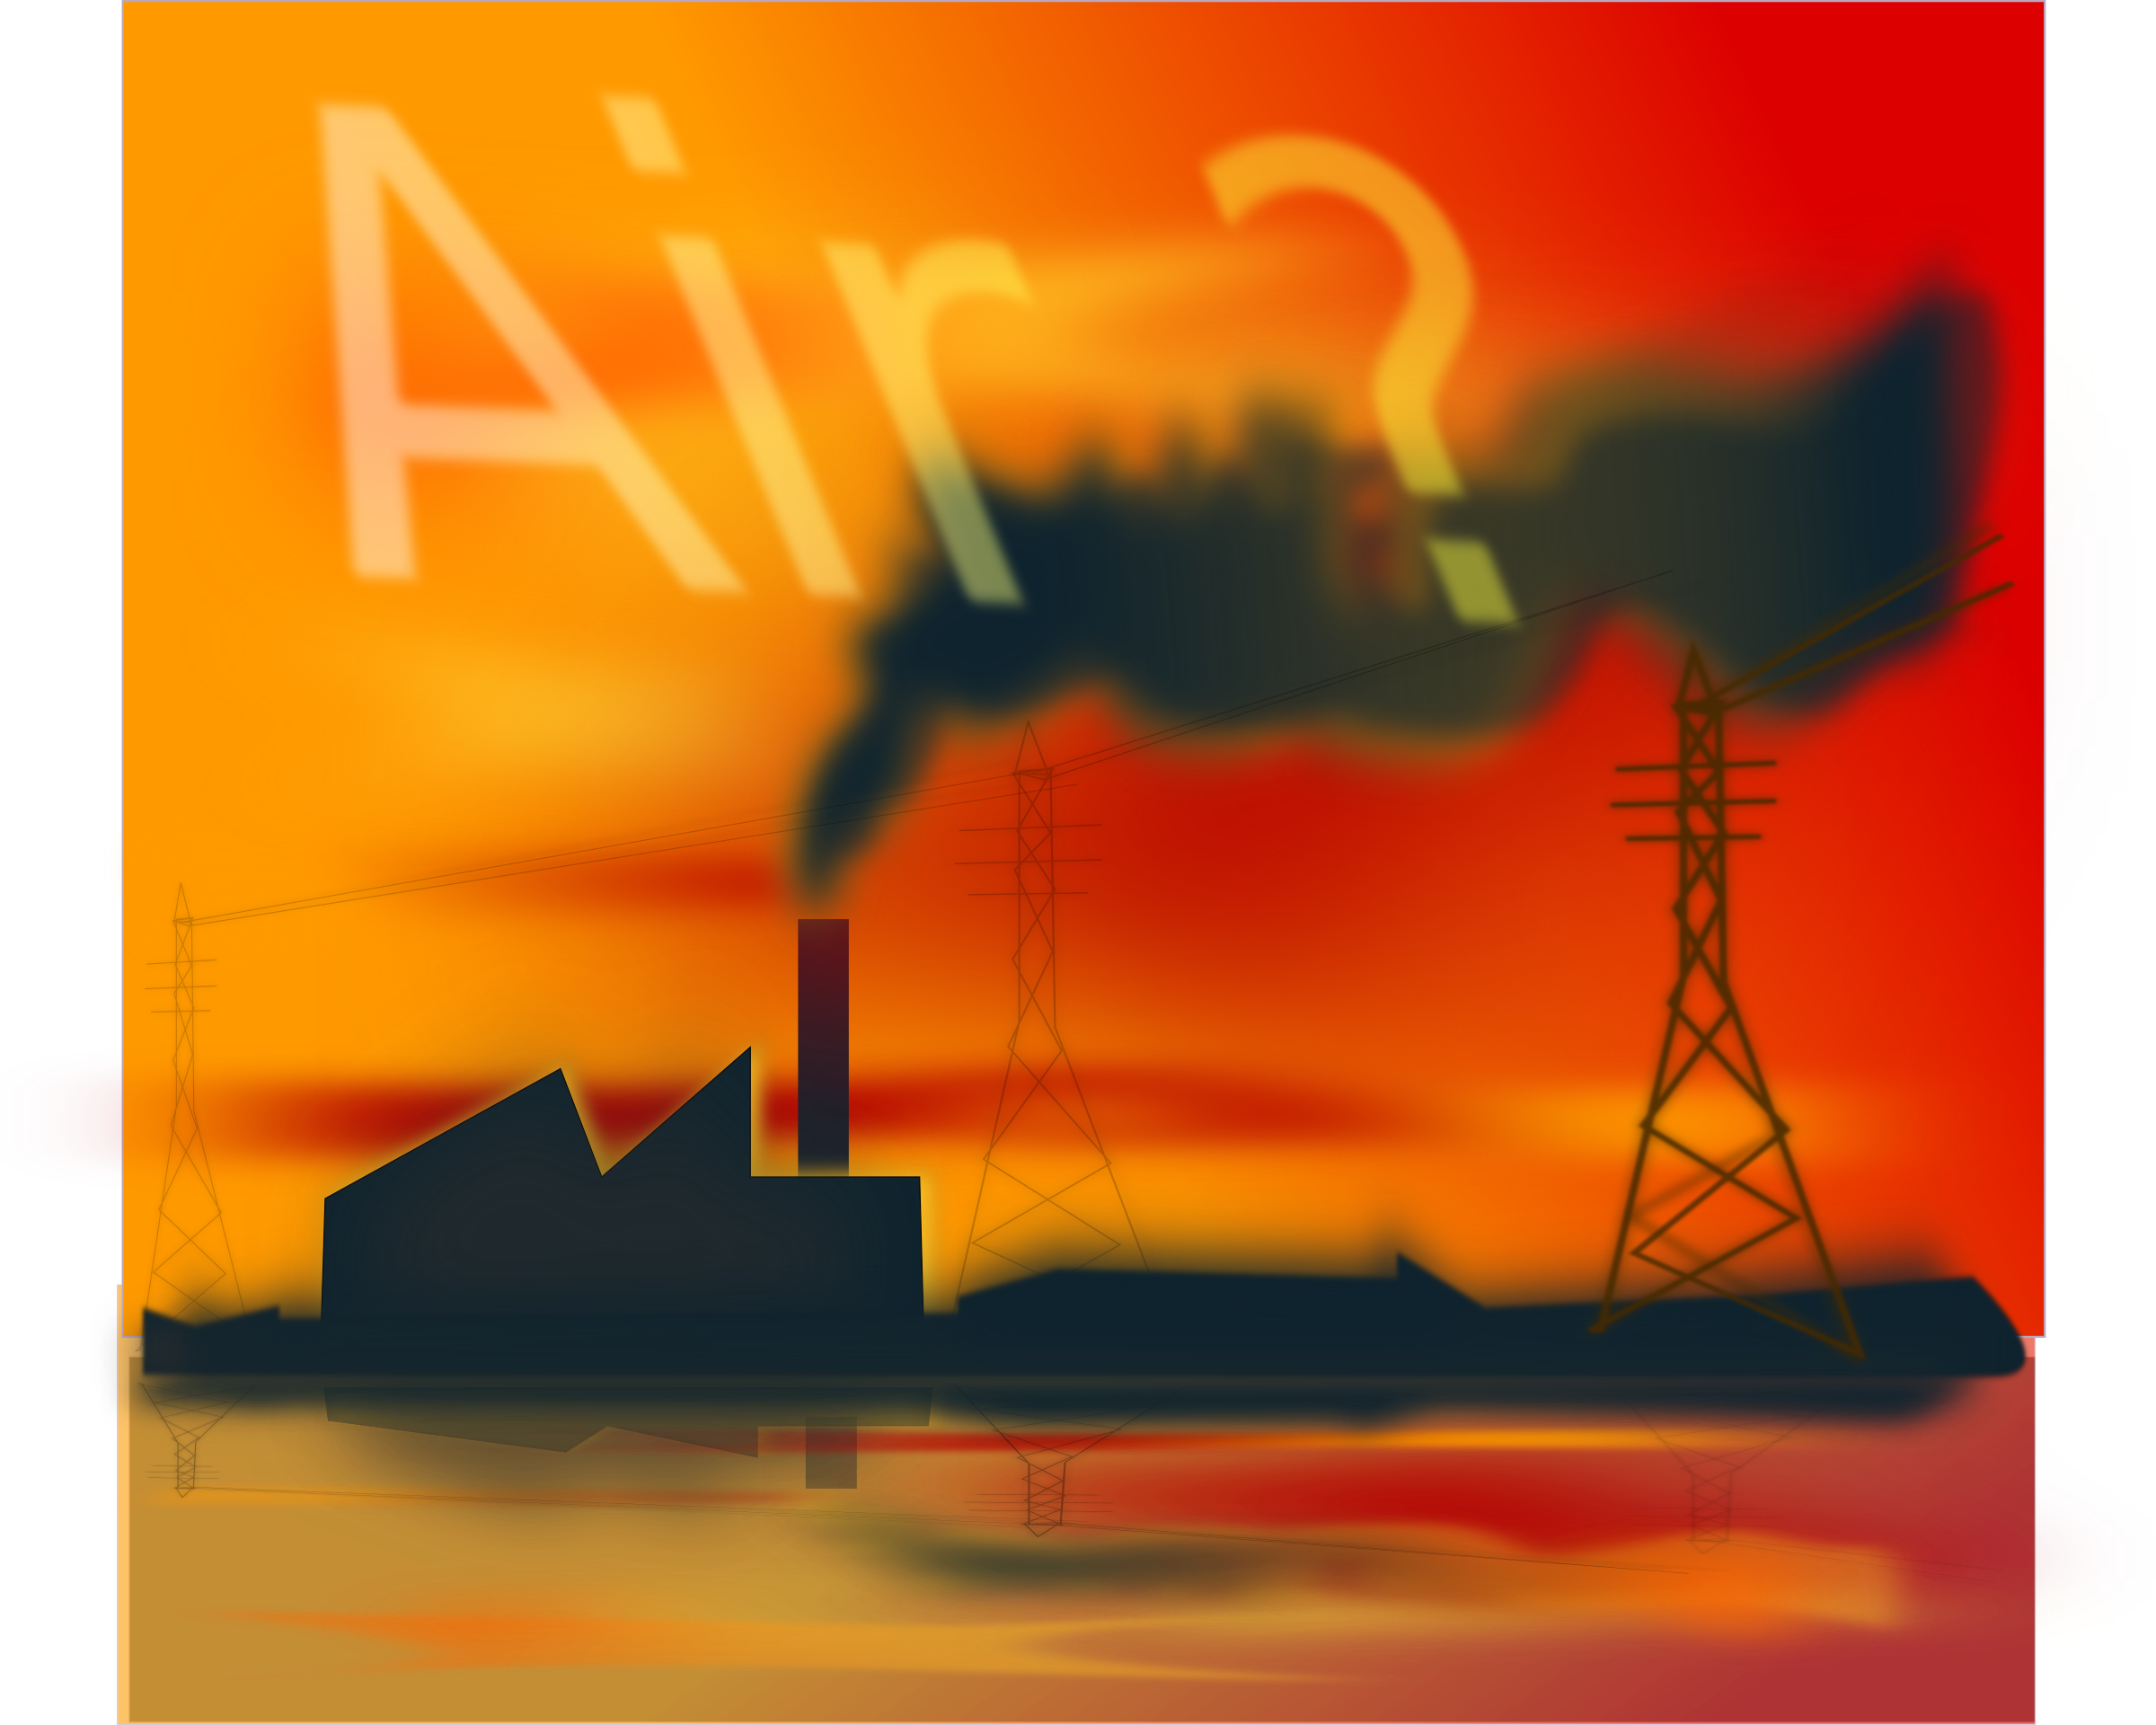 Industrial clipart environment pollution Clipart Pollution Air Pollution Air